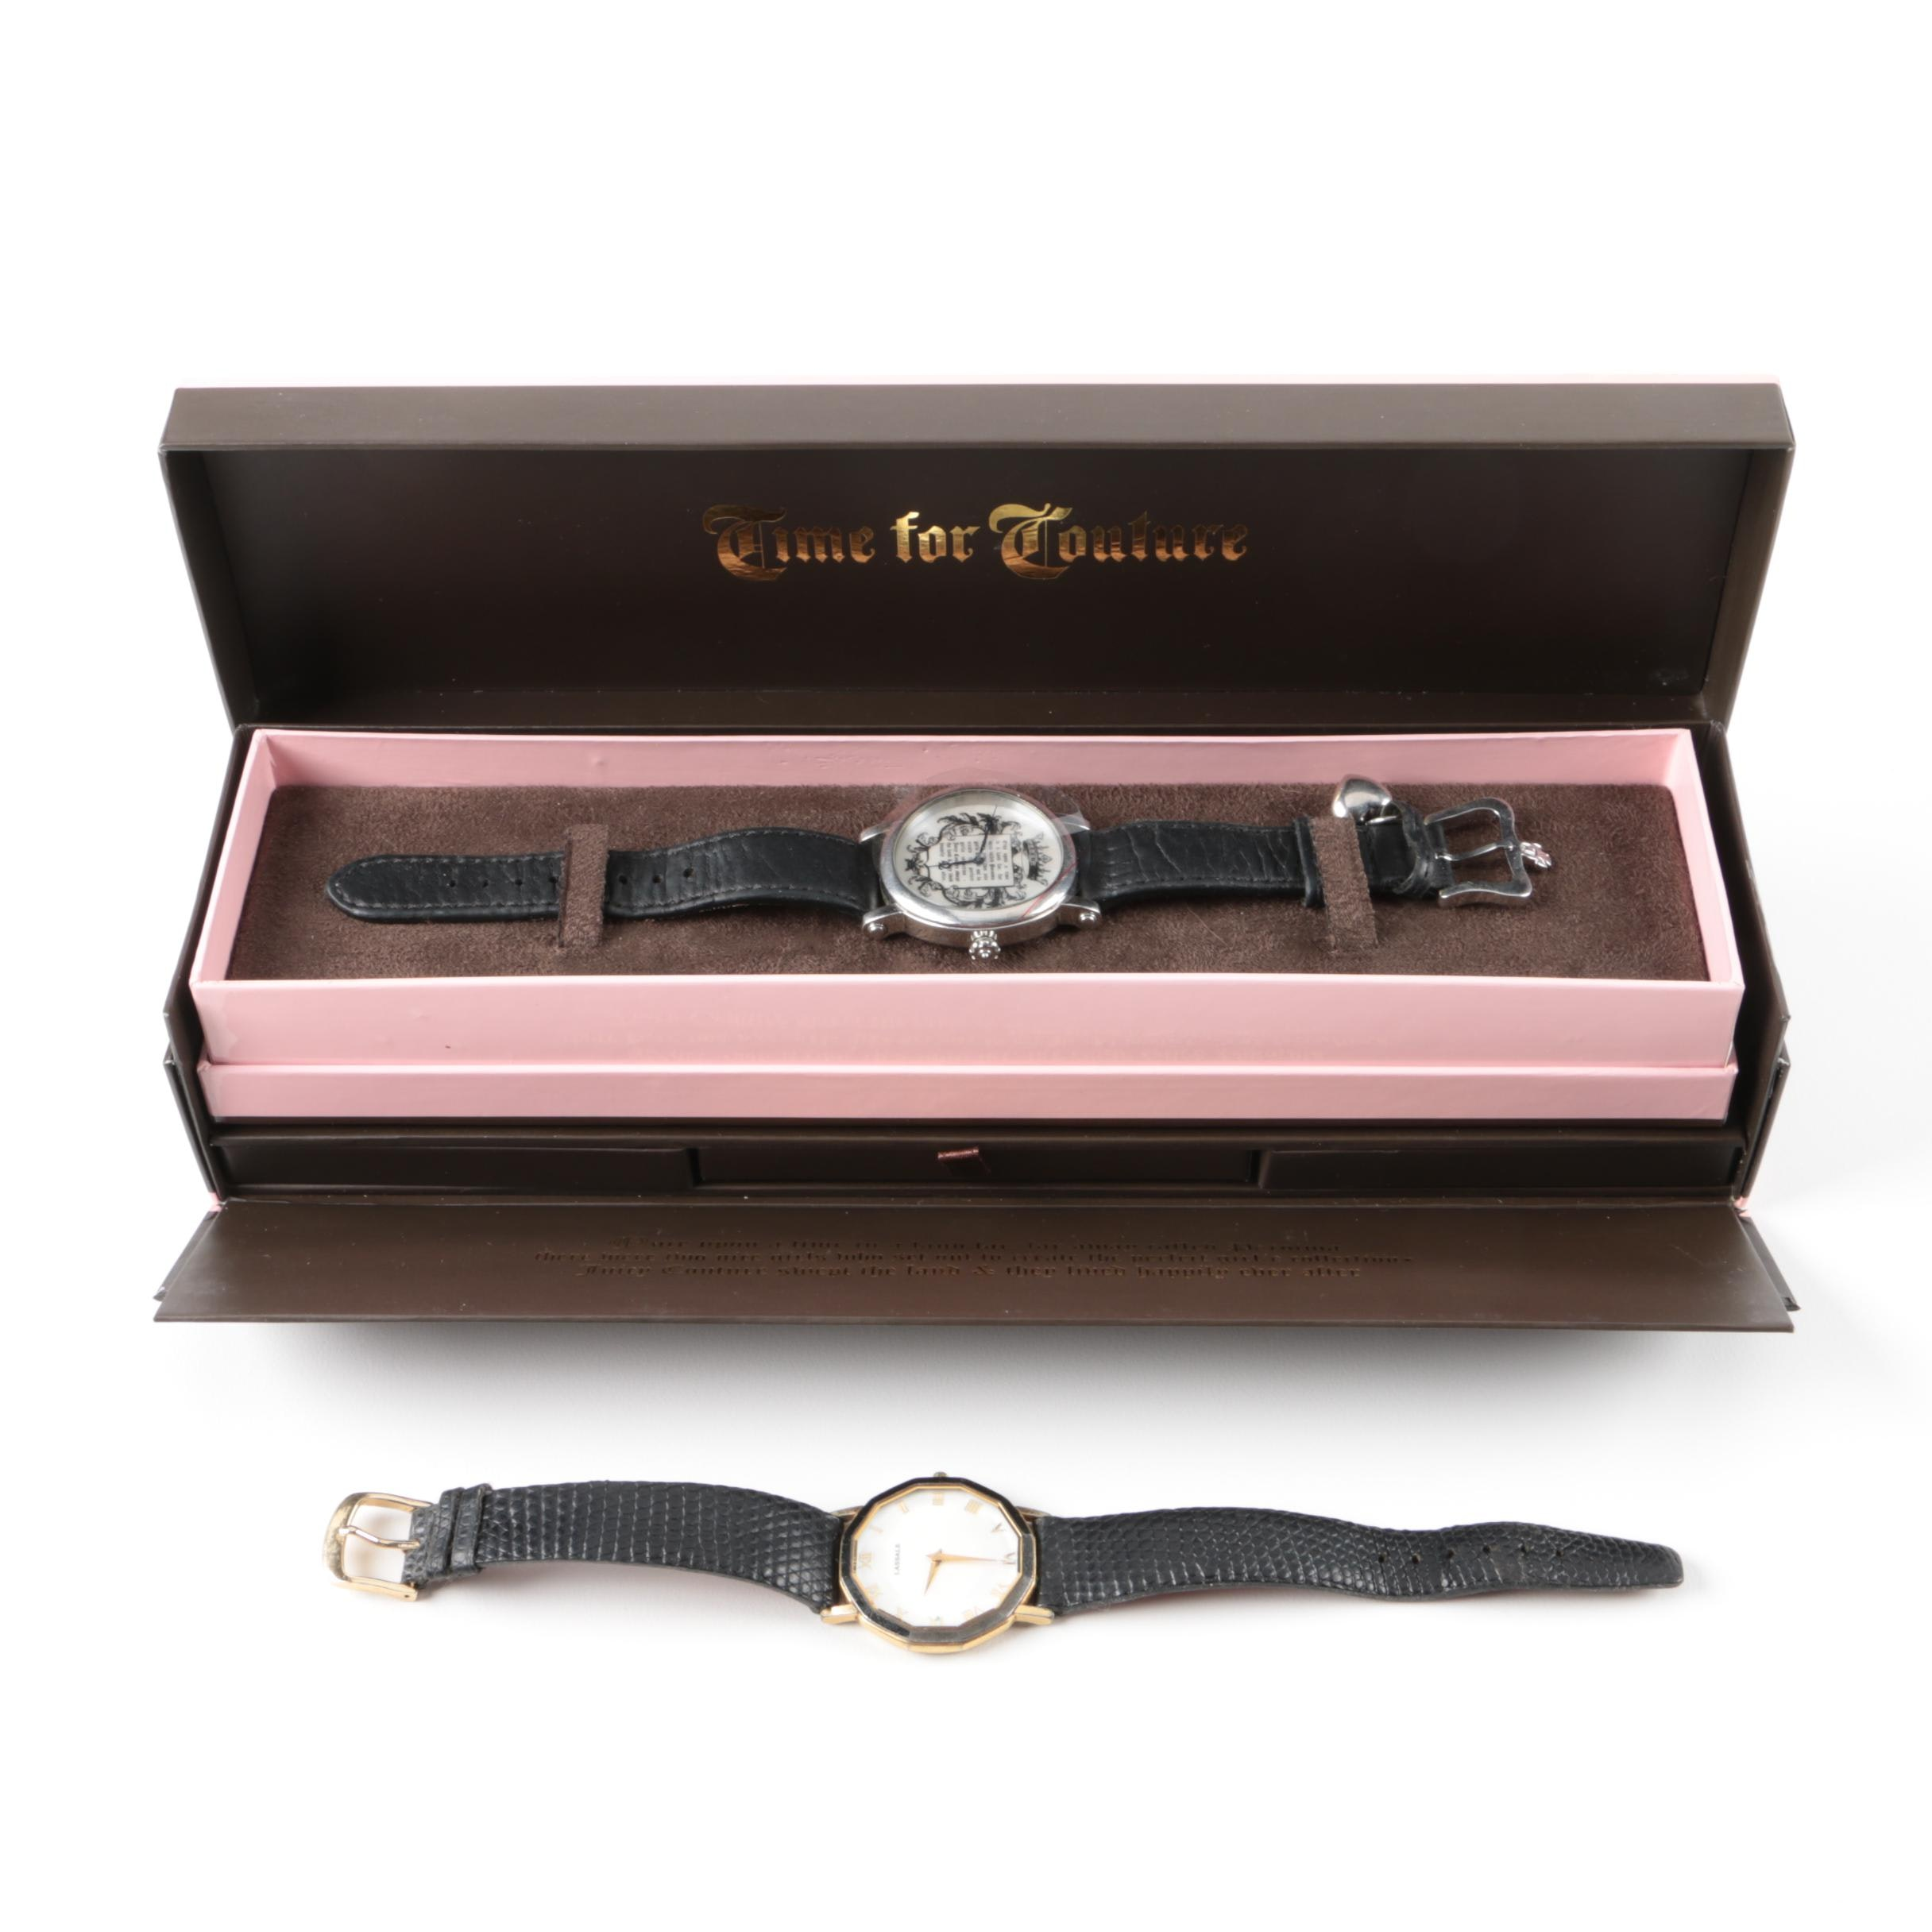 Pairing of Stainless Steel Wristwatches Including Juicy Couture